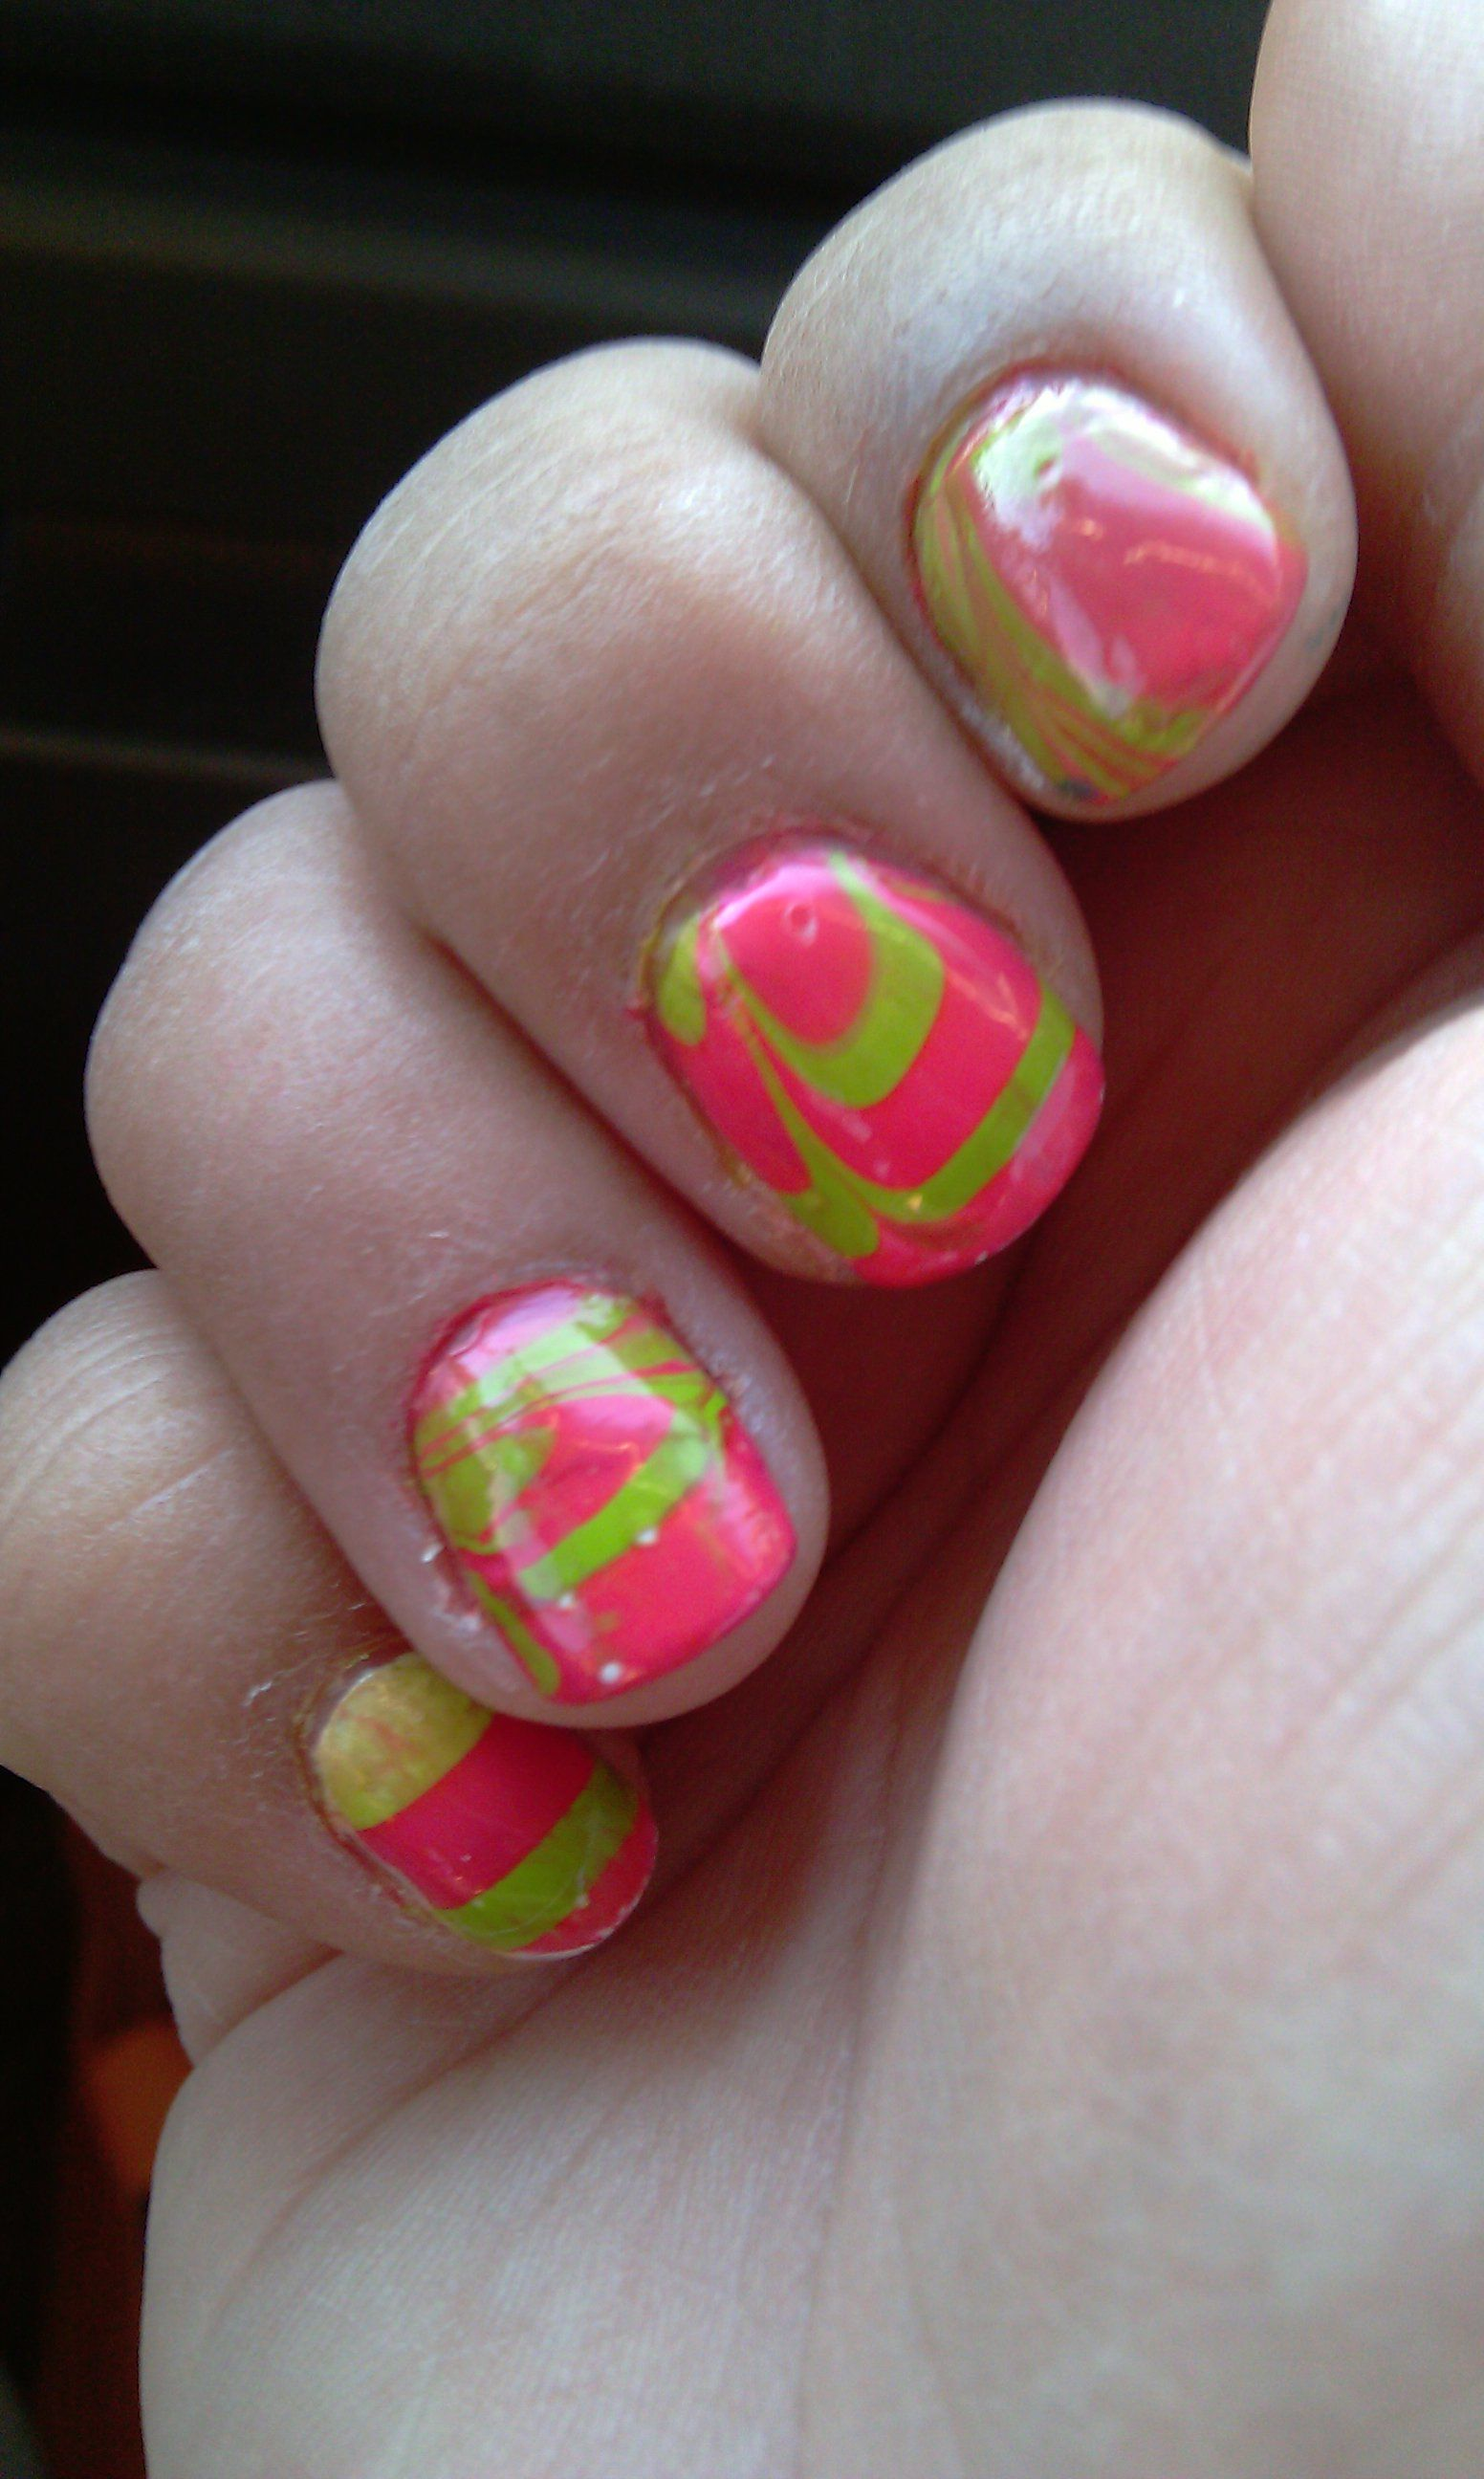 Neon Water Marble / Nails by Ingrid | Nail Art | Pinterest | Water ...